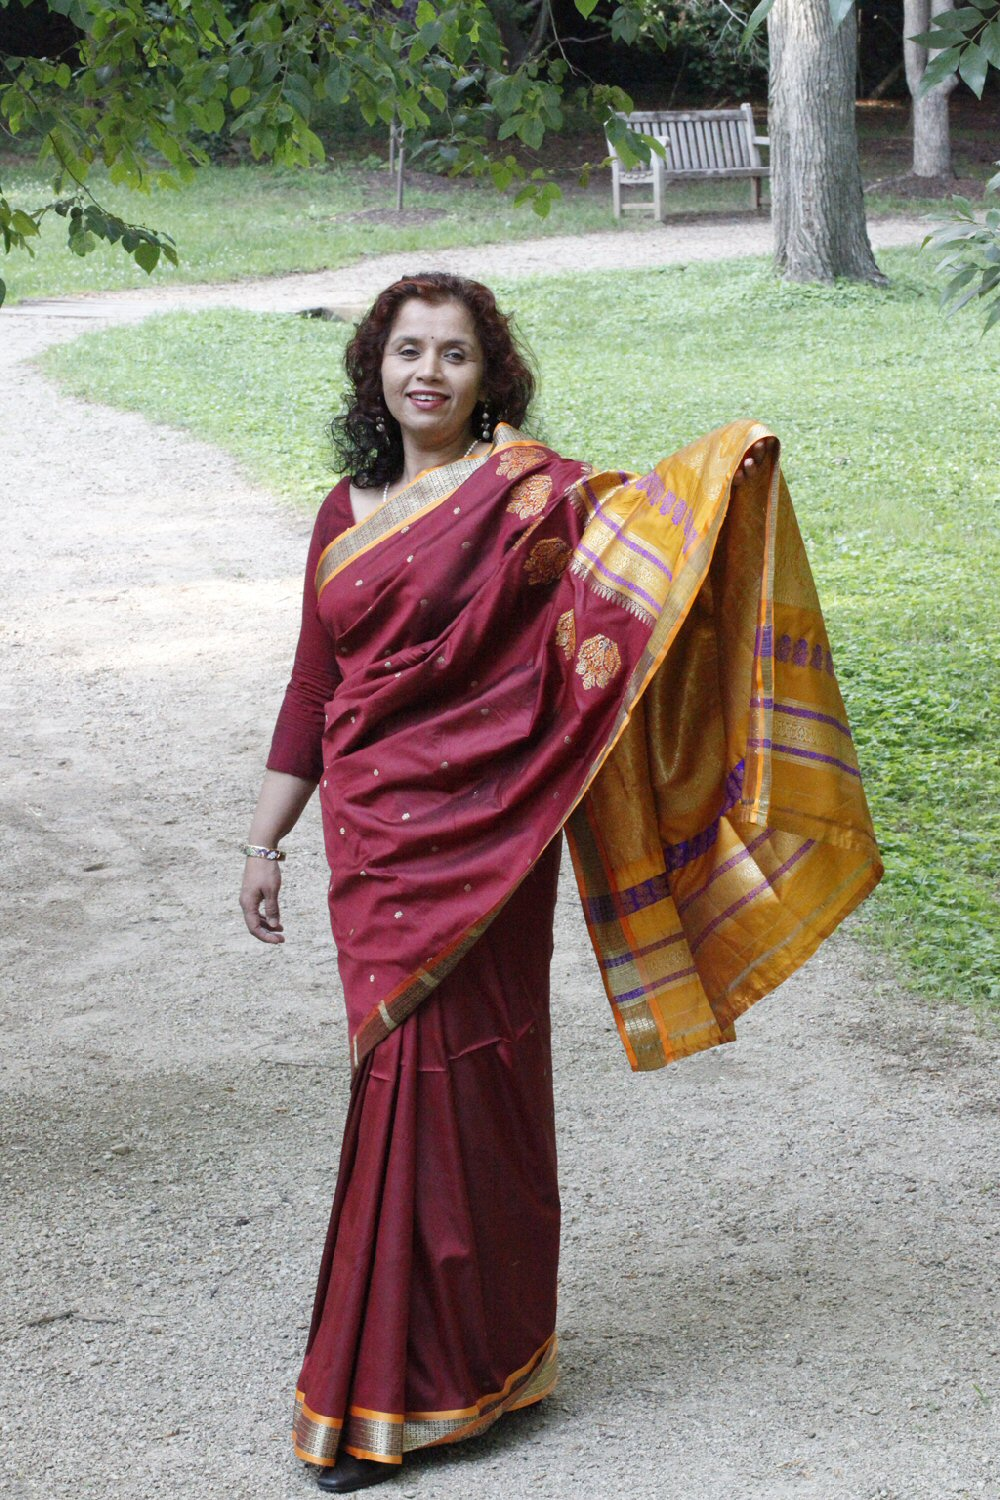 star of india with sari on full display accidental kelly landrum